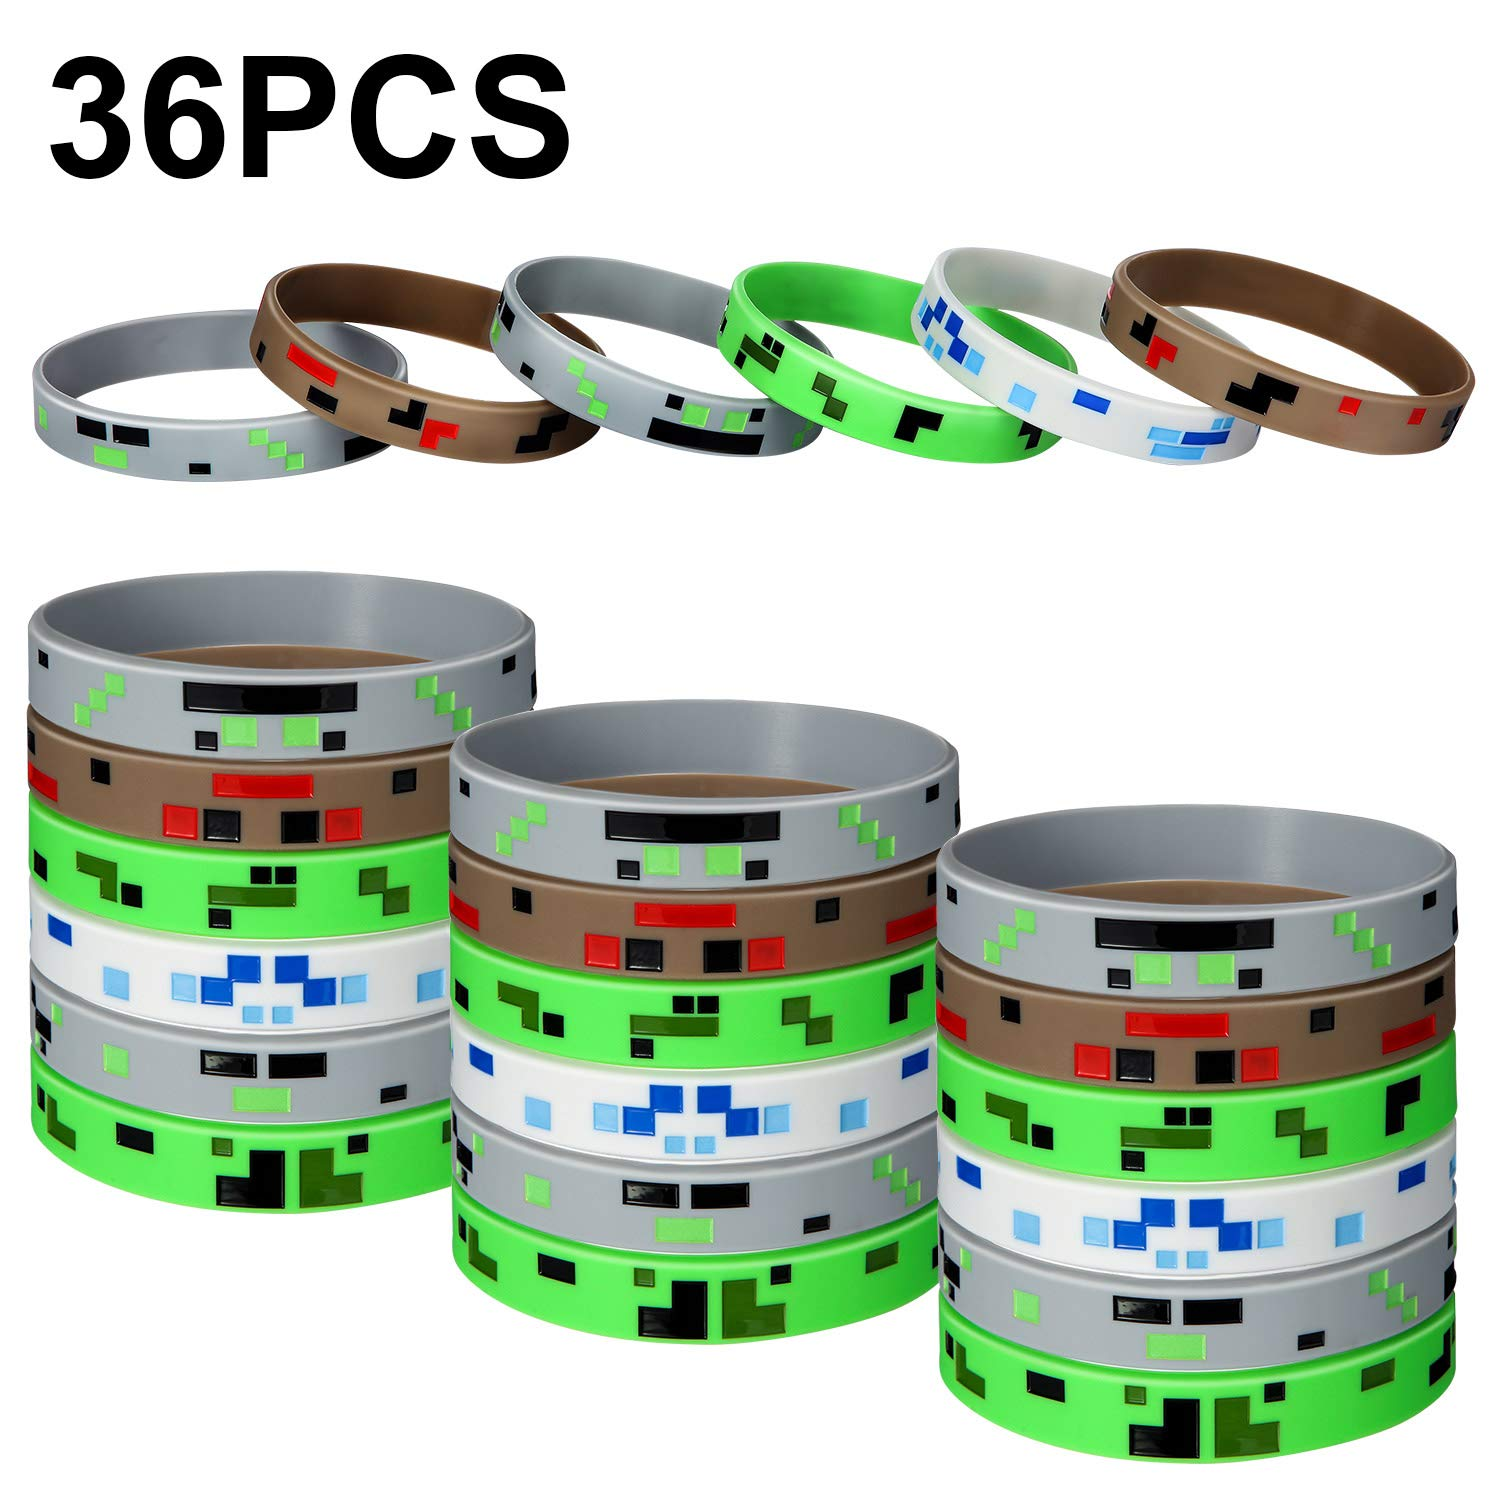 36 Pieces Pixelated Miner Crafting Style Character Wristband Bracelets, Pixelated Theme Bracelet Designs for Mining Themed or Any Crafting Style Birthday Party Supplies by Jovitec